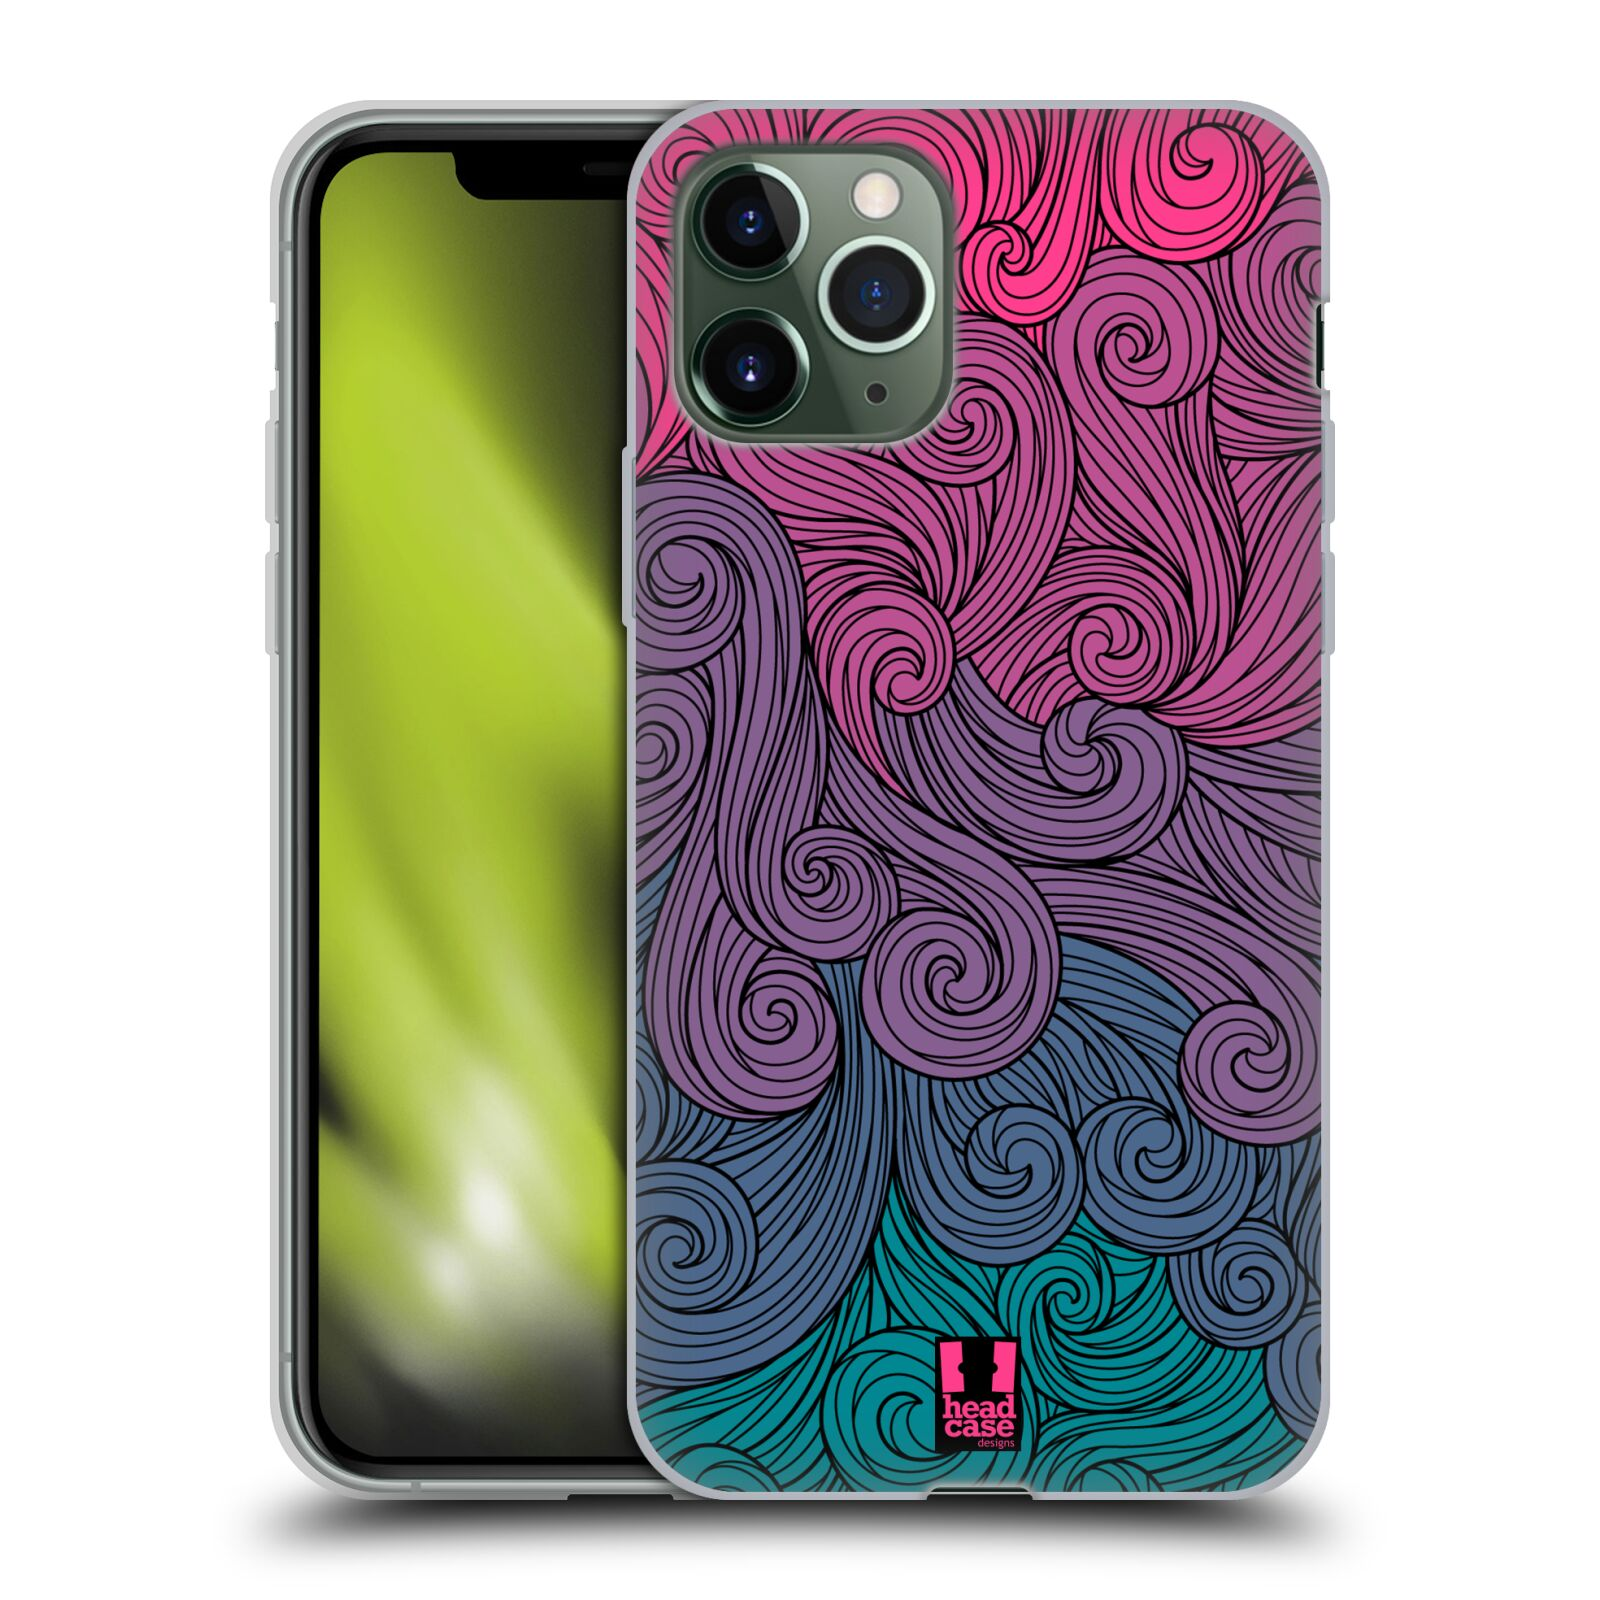 ebay krytu na iphone 8 plus | Silikonové pouzdro na mobil Apple iPhone 11 Pro - Head Case - Swirls Hot Pink